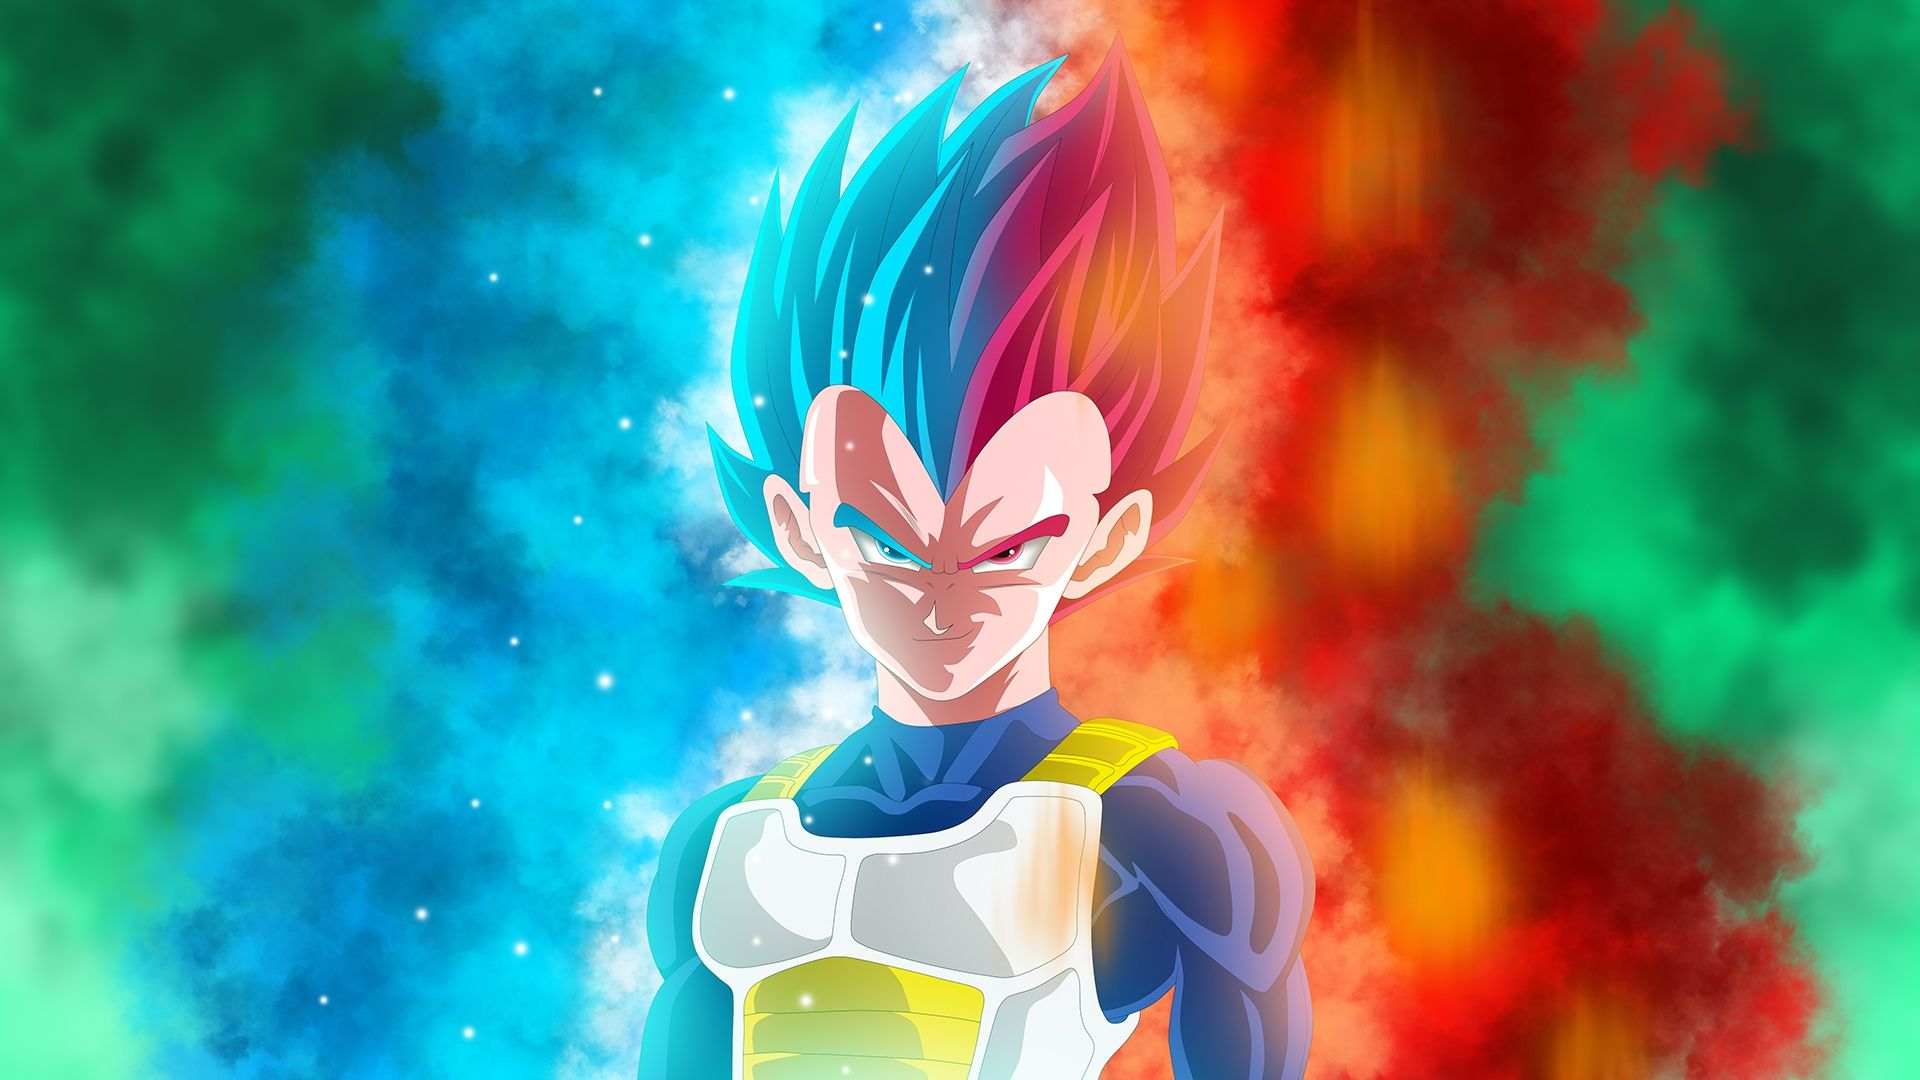 Dbz God Wallpapers Top Free Dbz God Backgrounds Wallpaperaccess